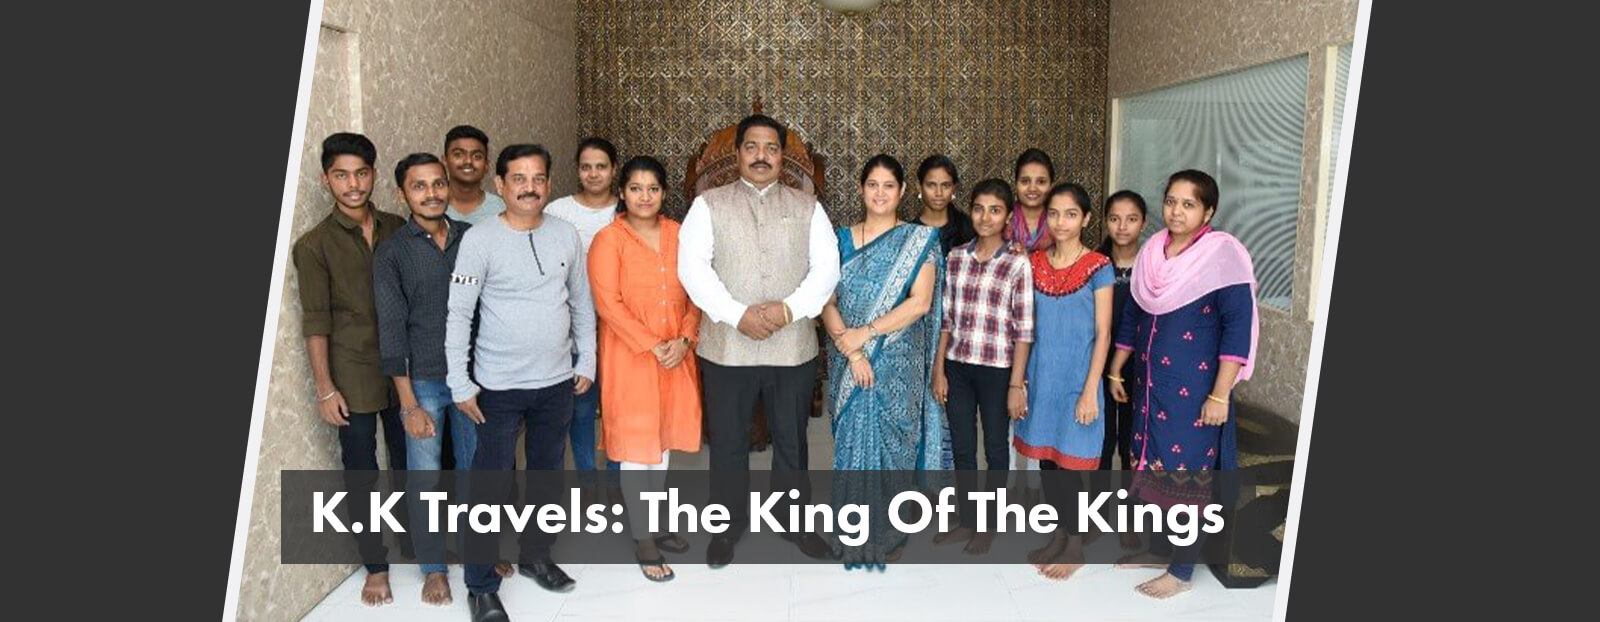 K.K Travels: The King Of The Kings